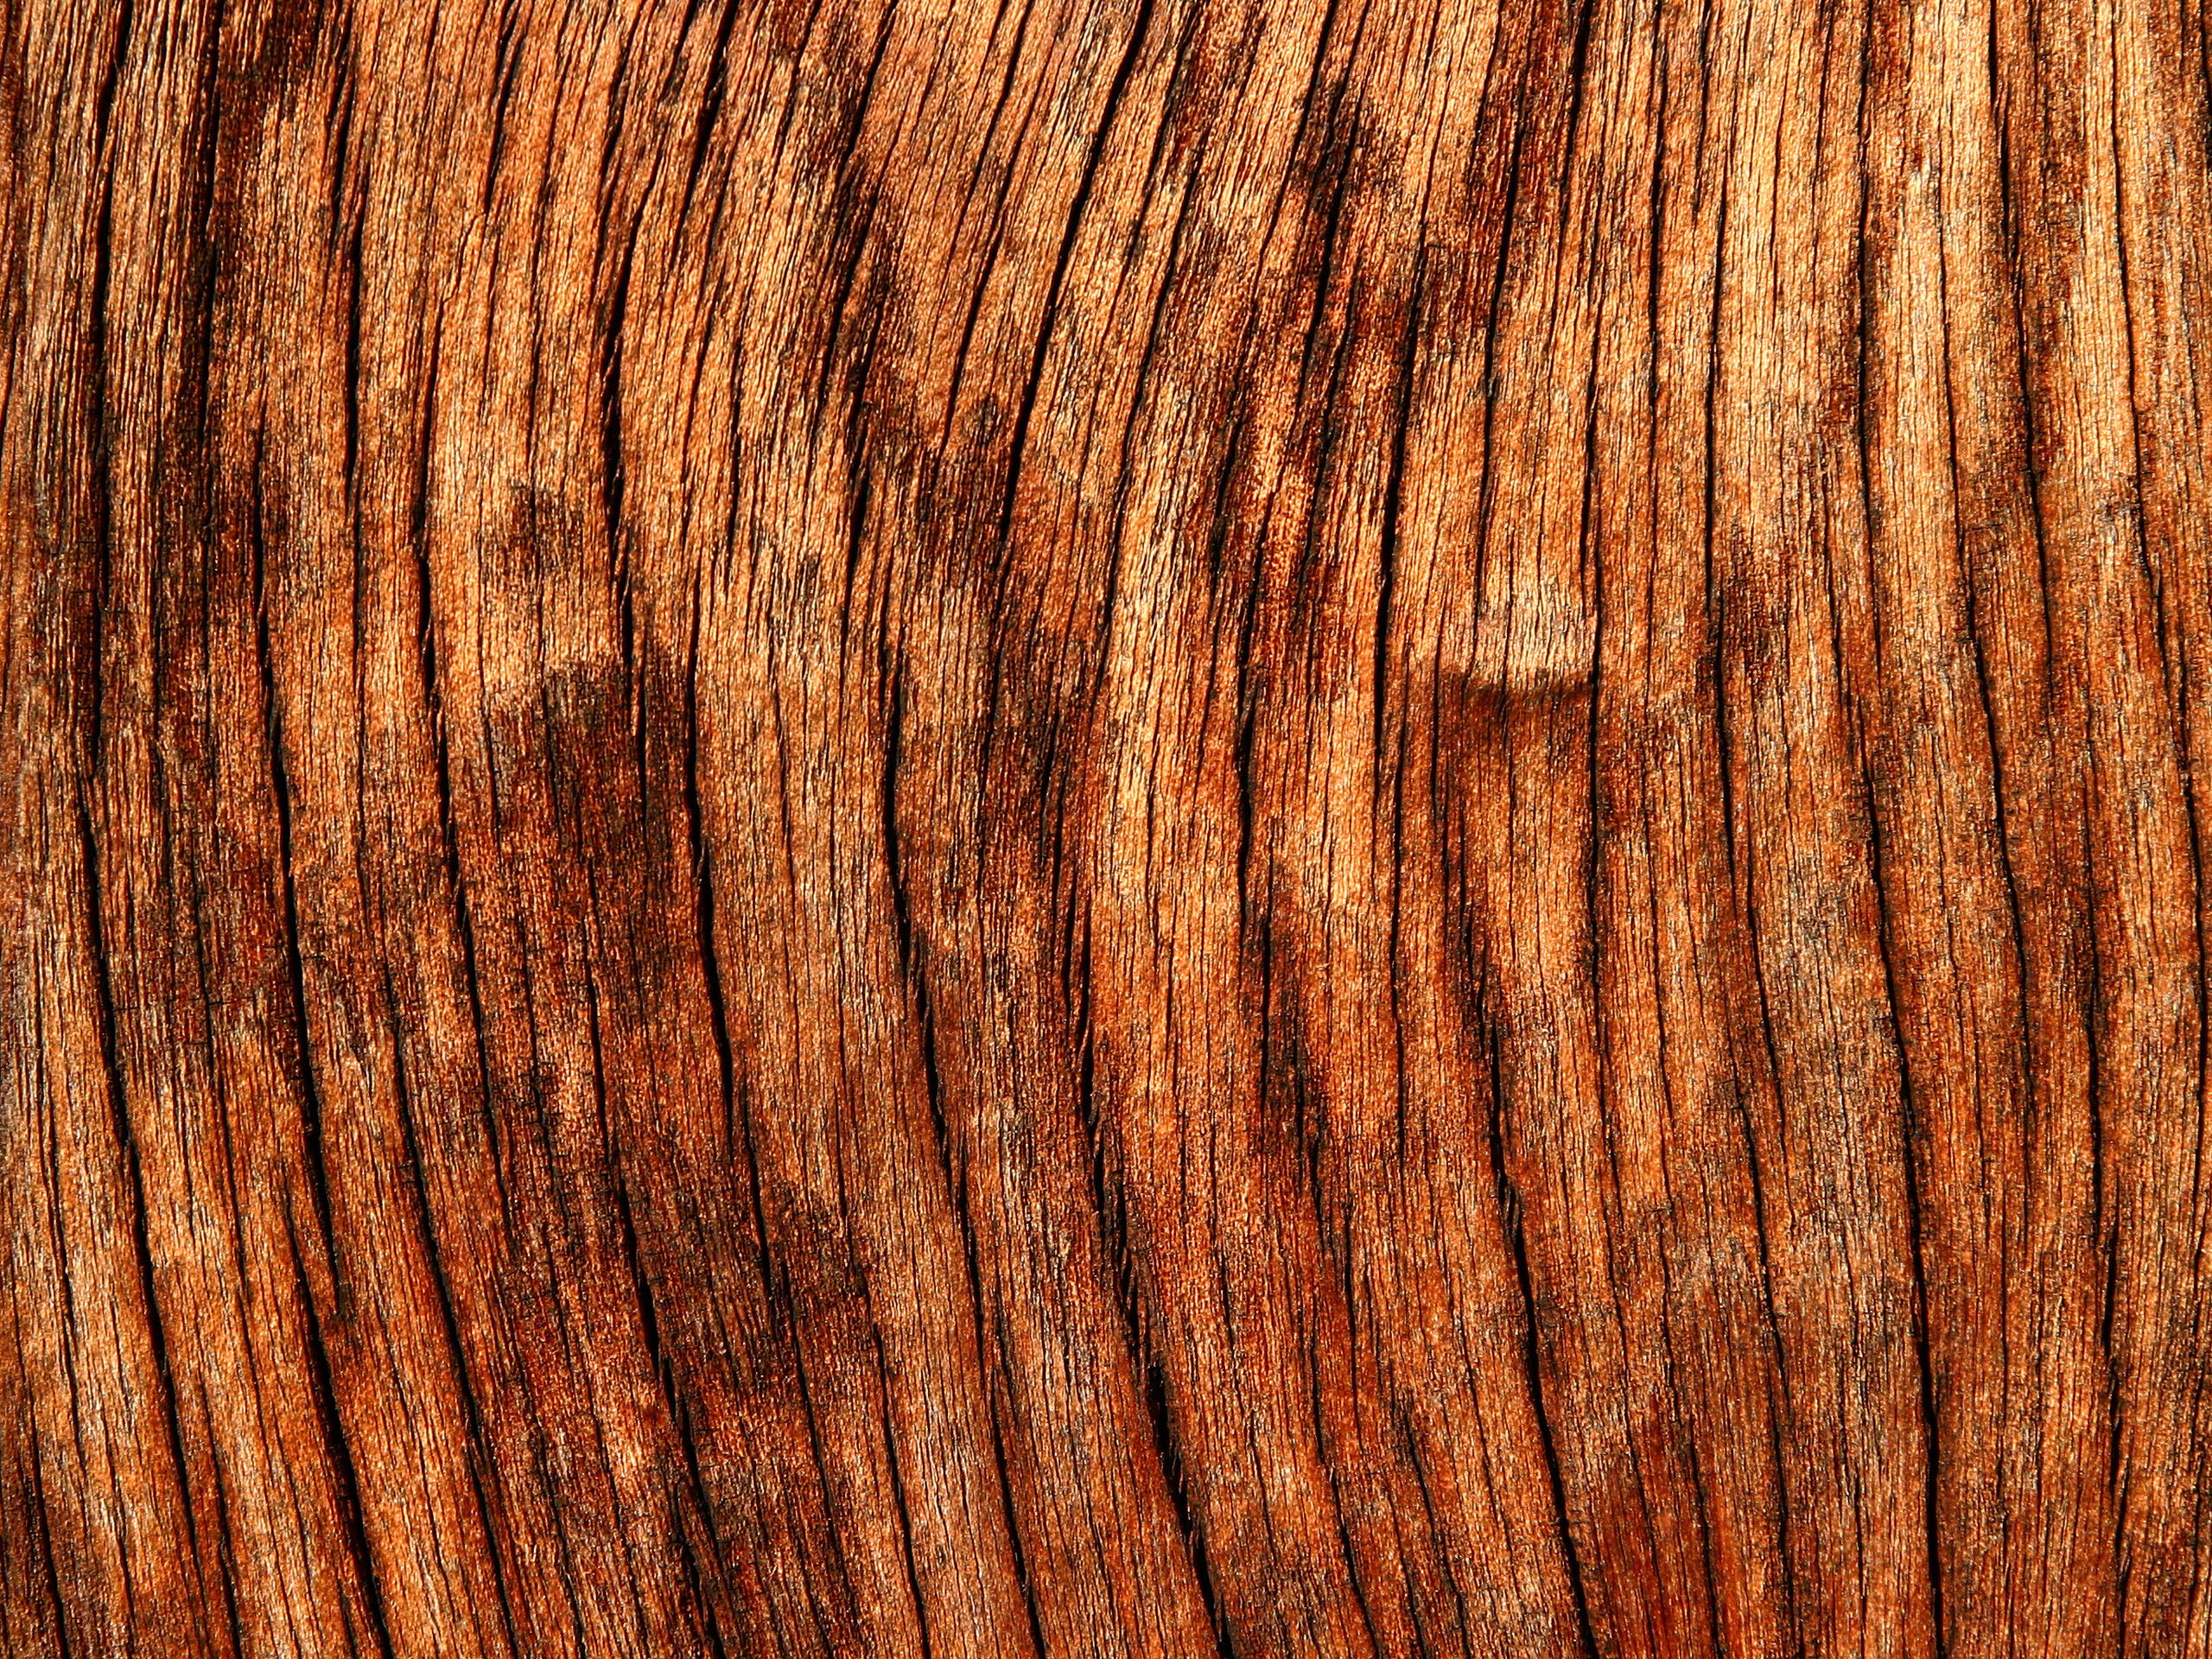 Wooden Textures for Designers (5)